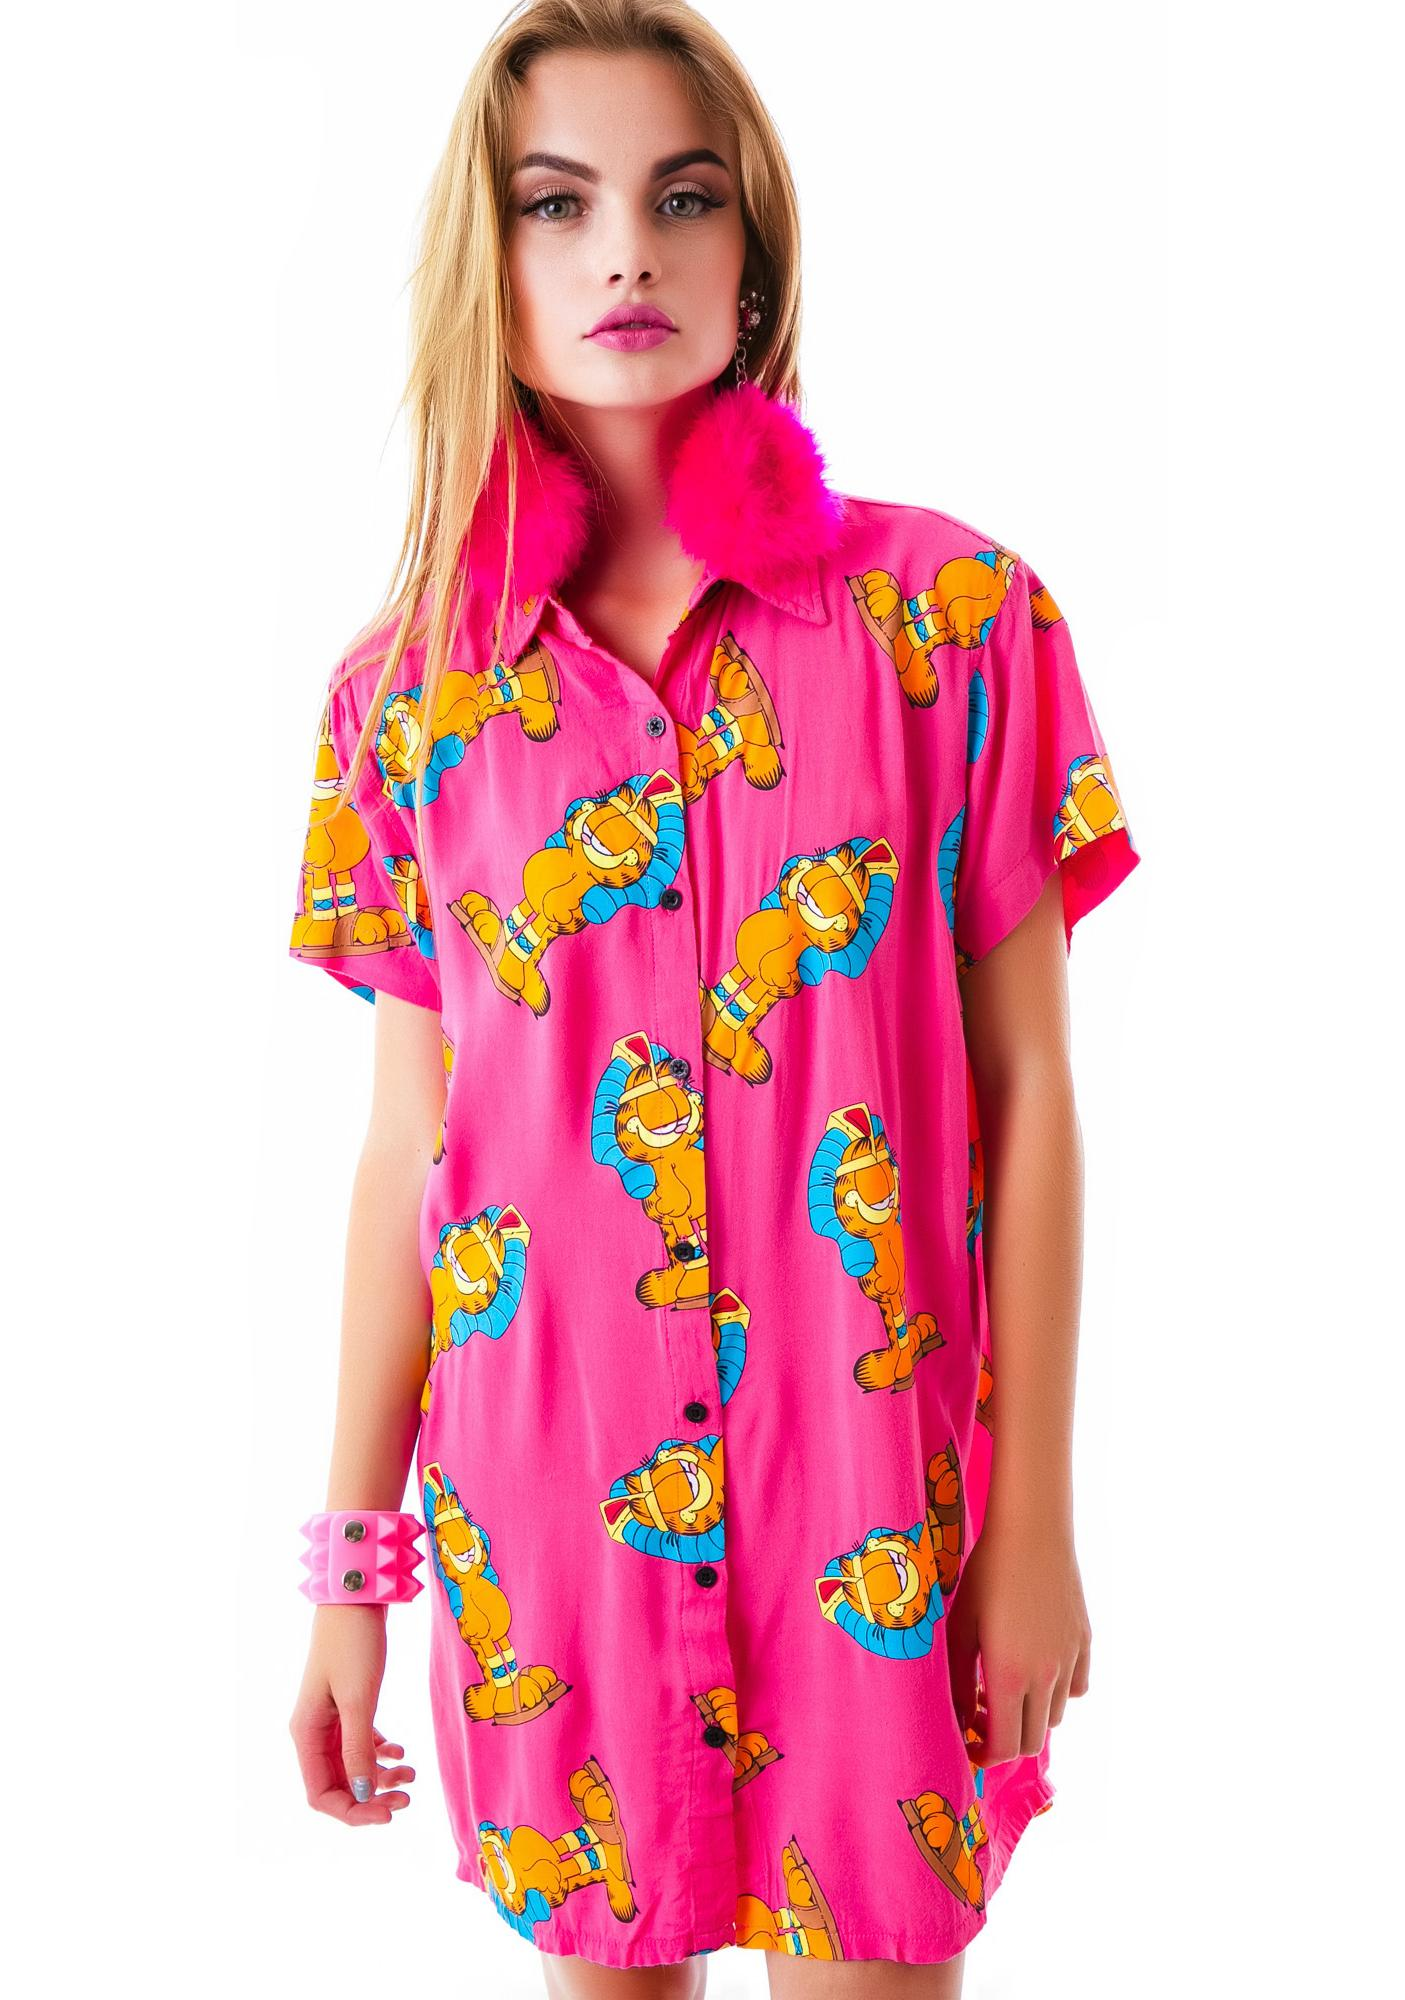 Lazy Oaf x Garfield Pharoah Enough Shirt